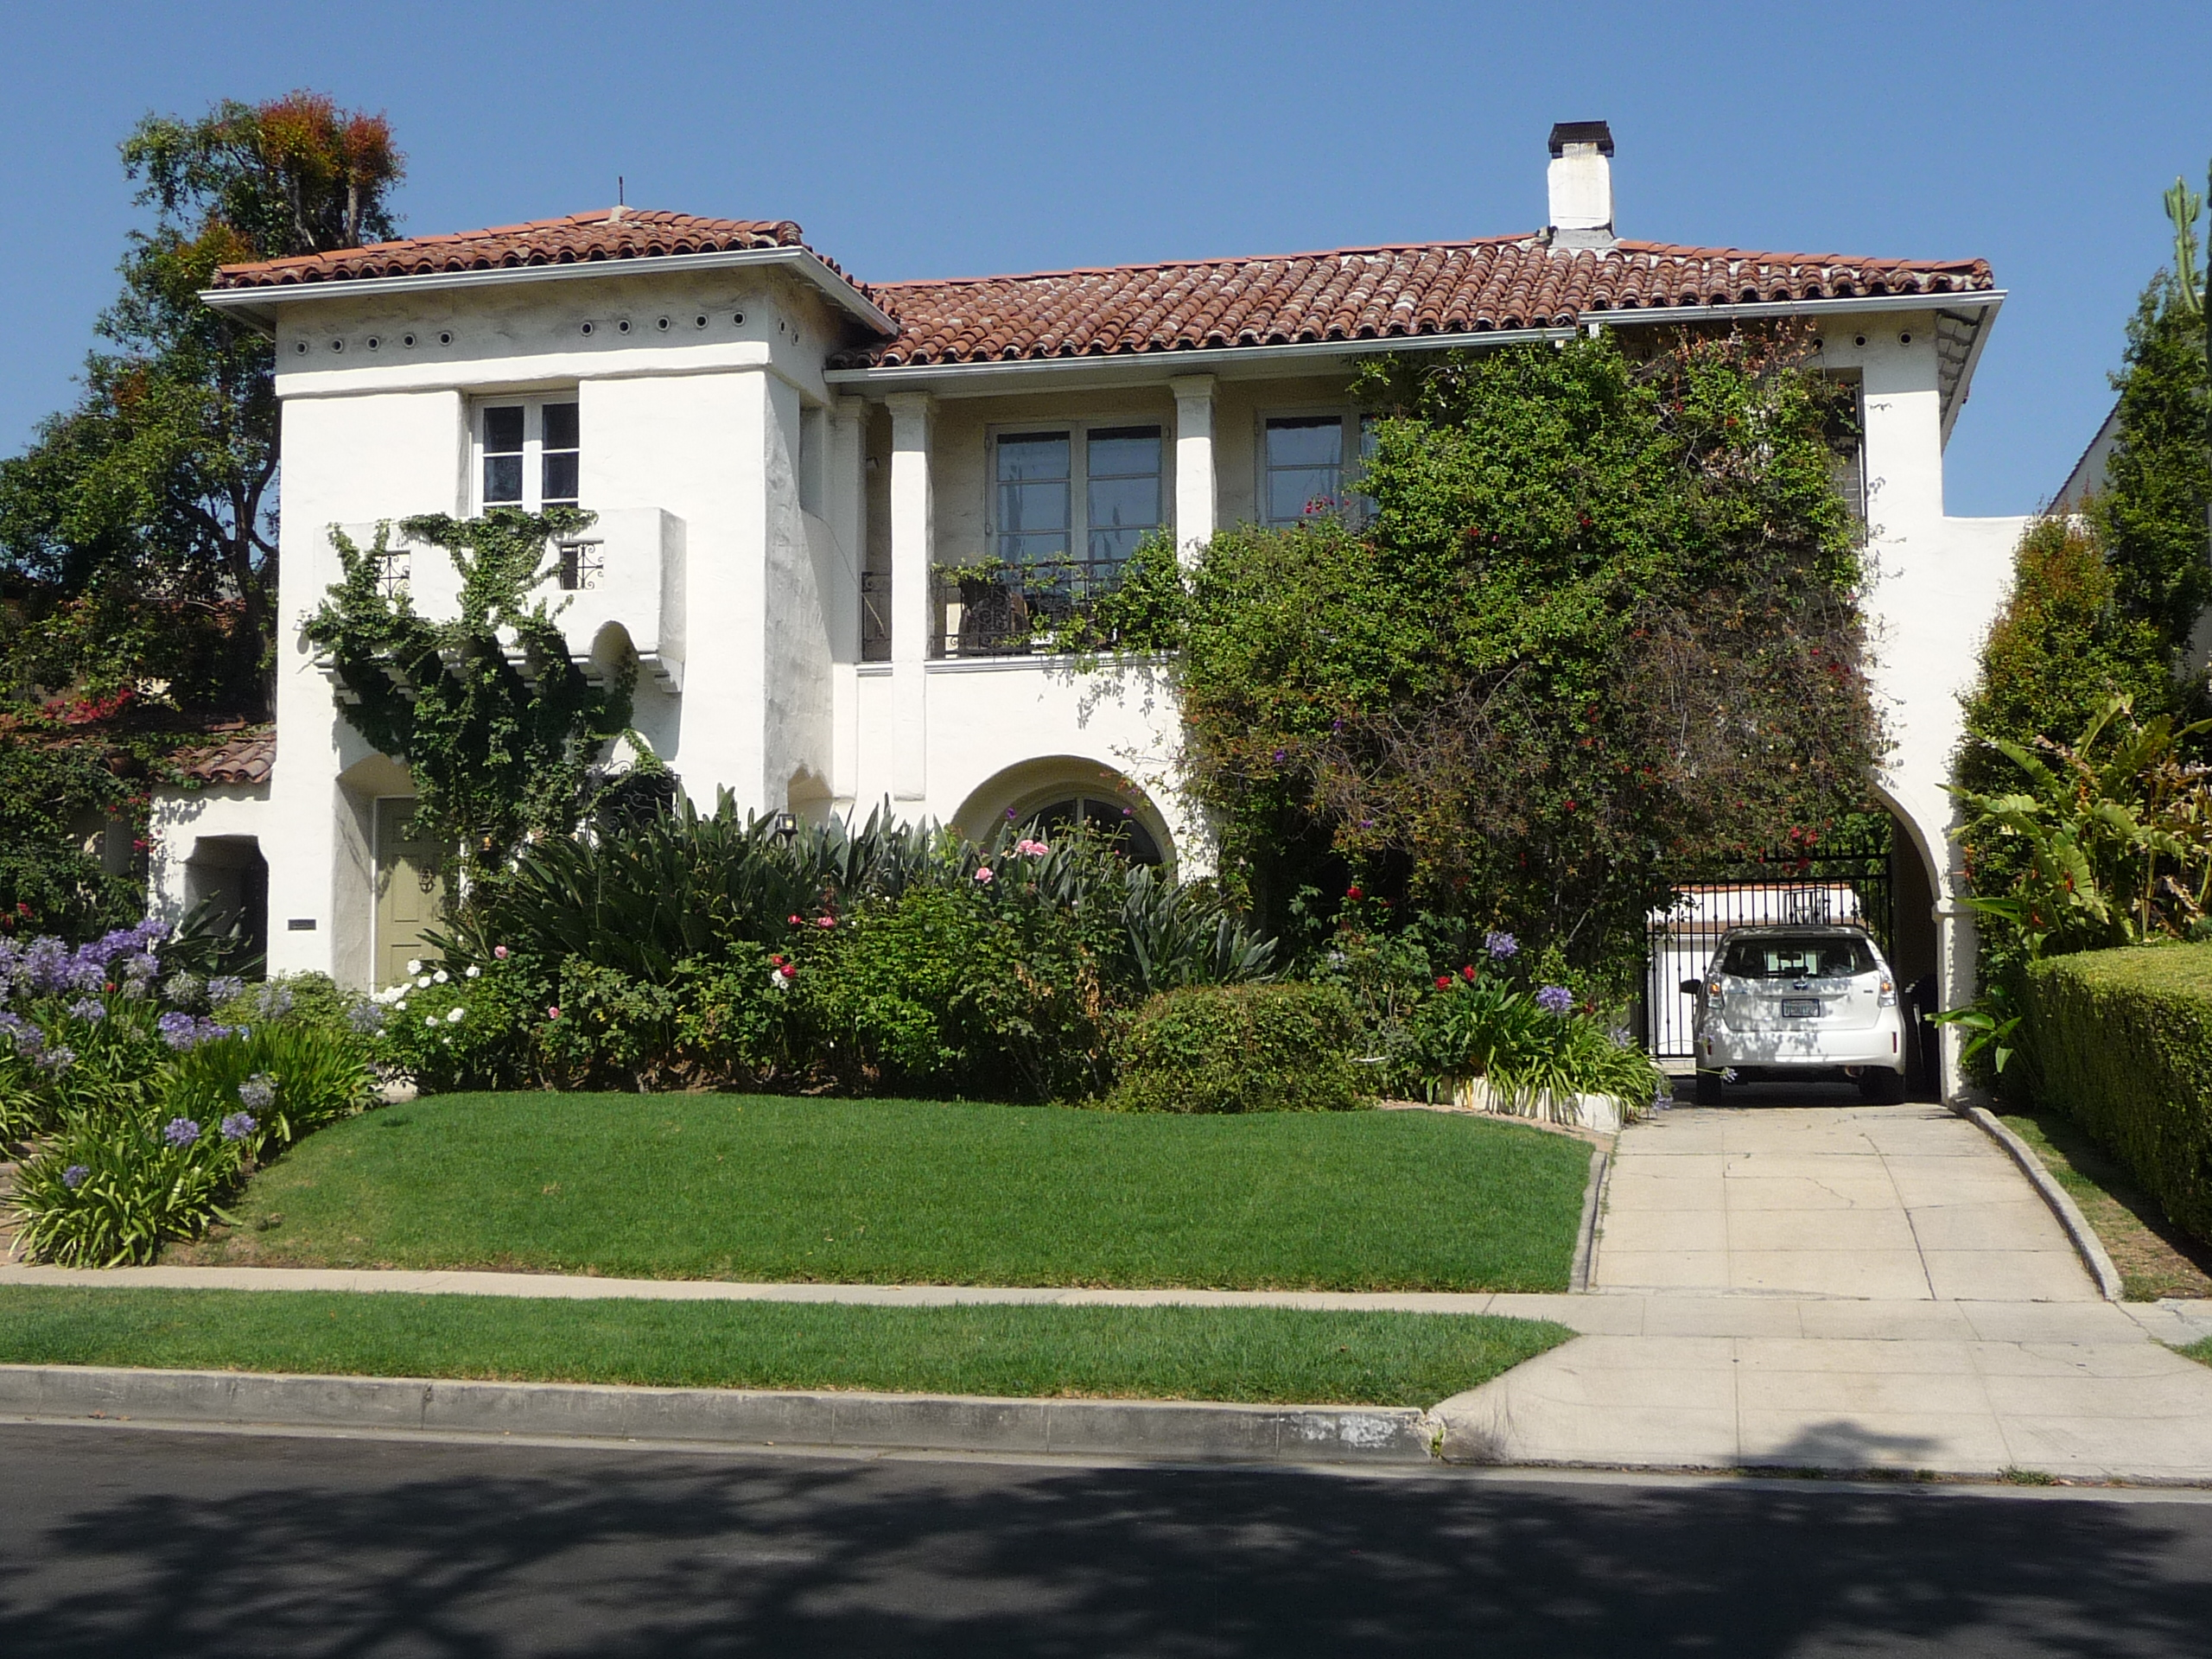 324 N MANSFIELD AVE - PHOTO